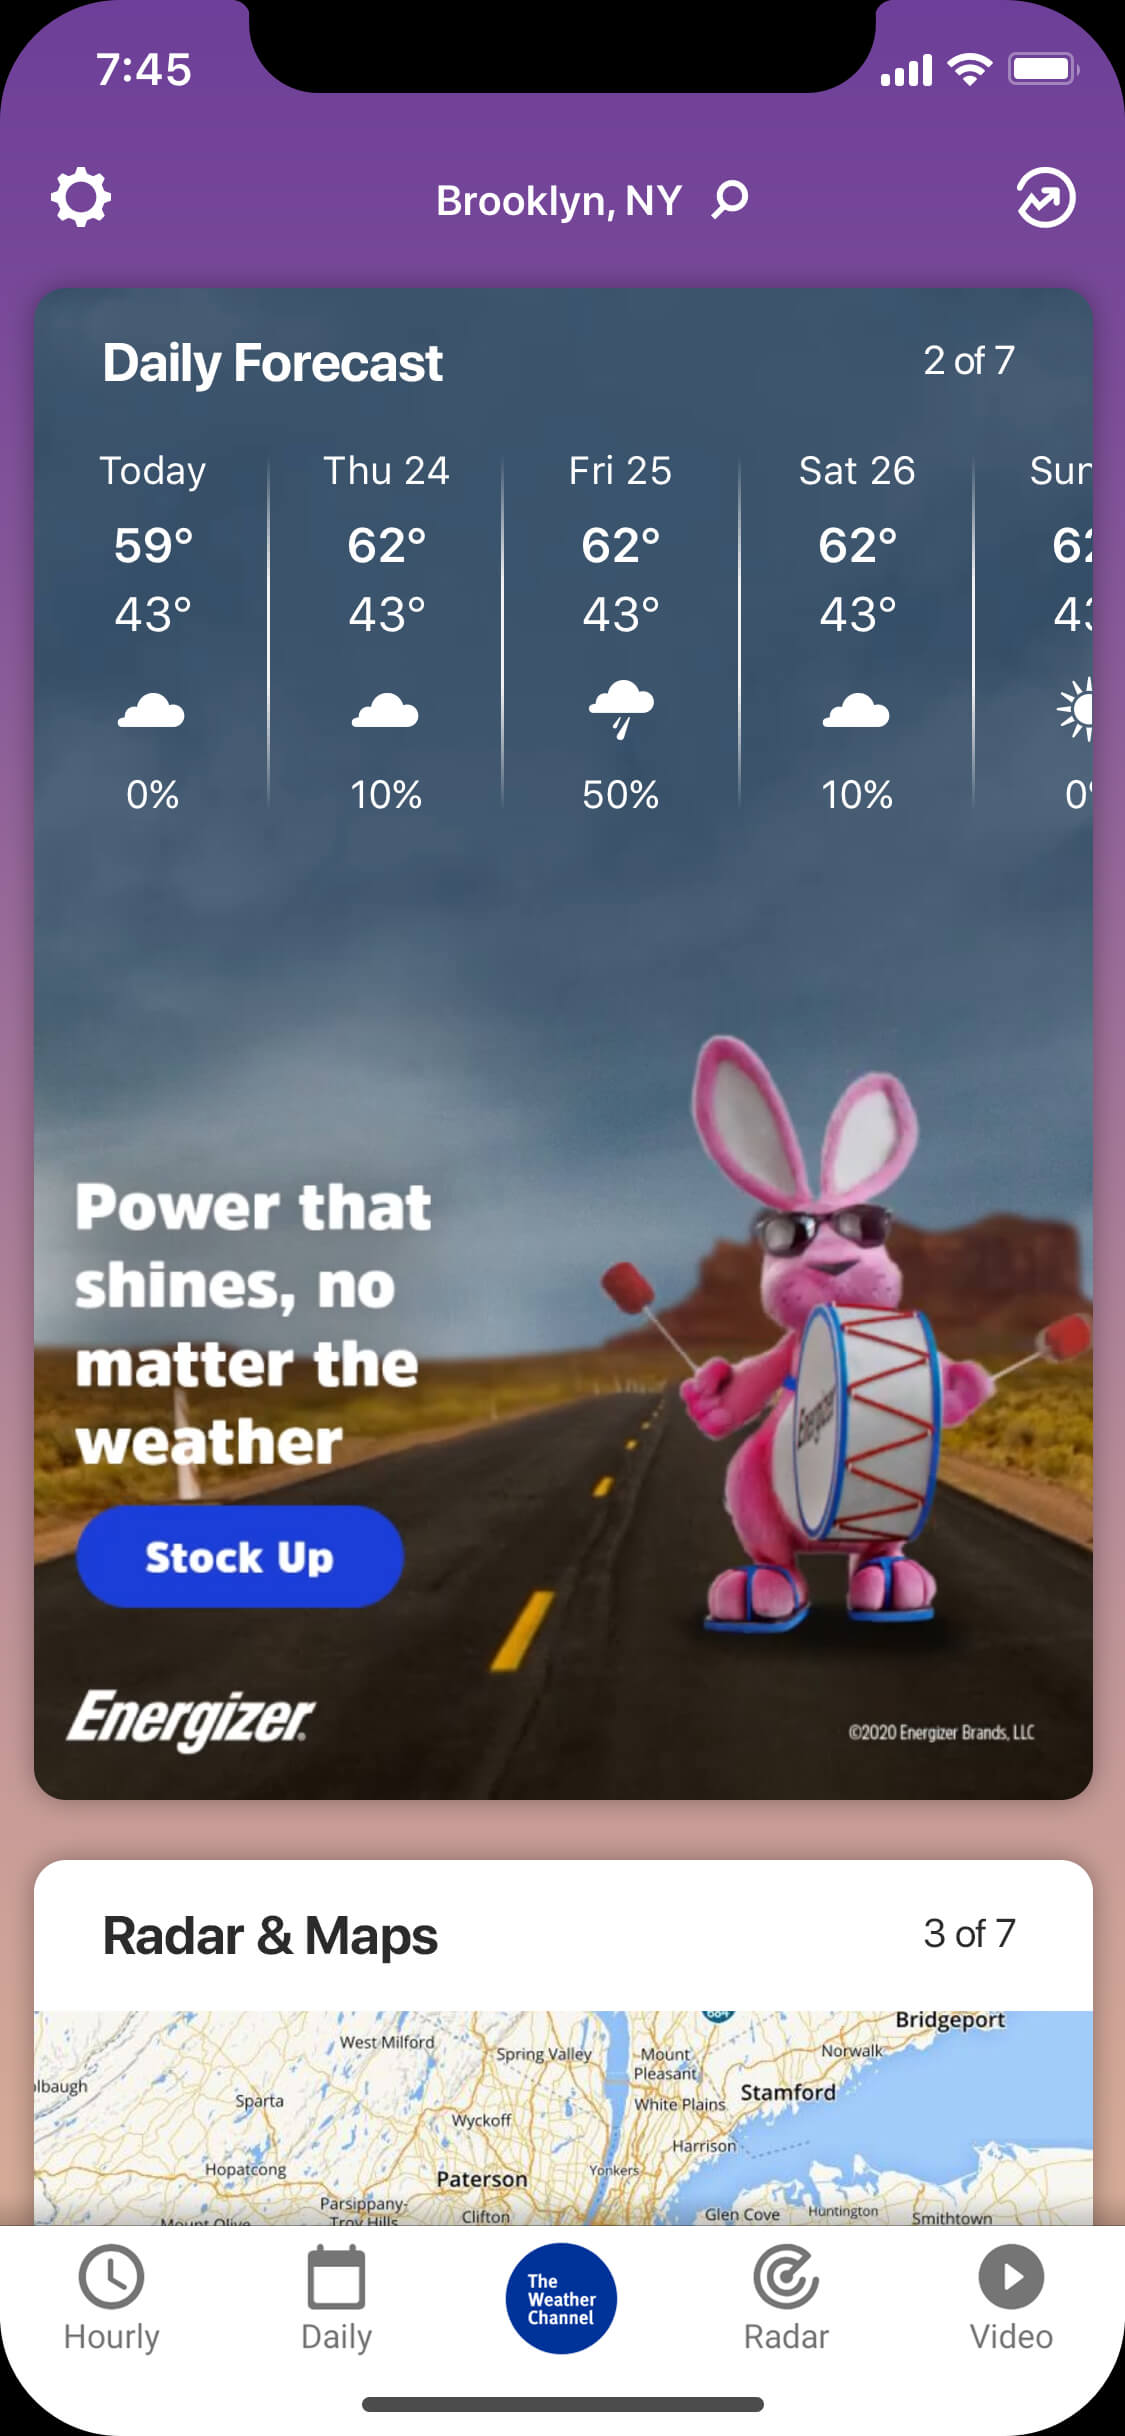 energizer-maif-cloudy-day